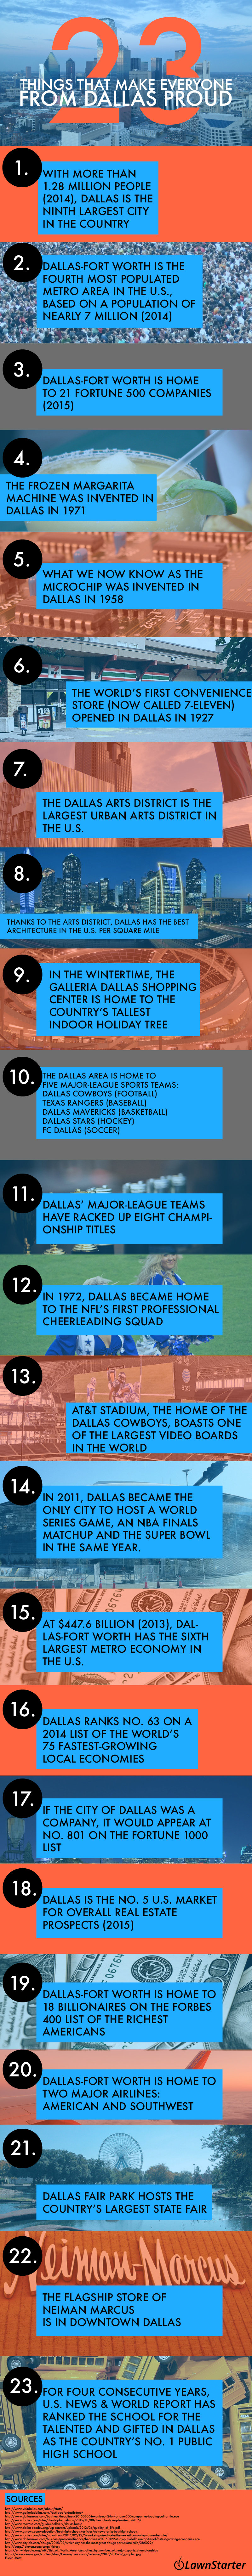 23 Things That Make Everyone from Dallas Proud - Designed by Lawnstarter